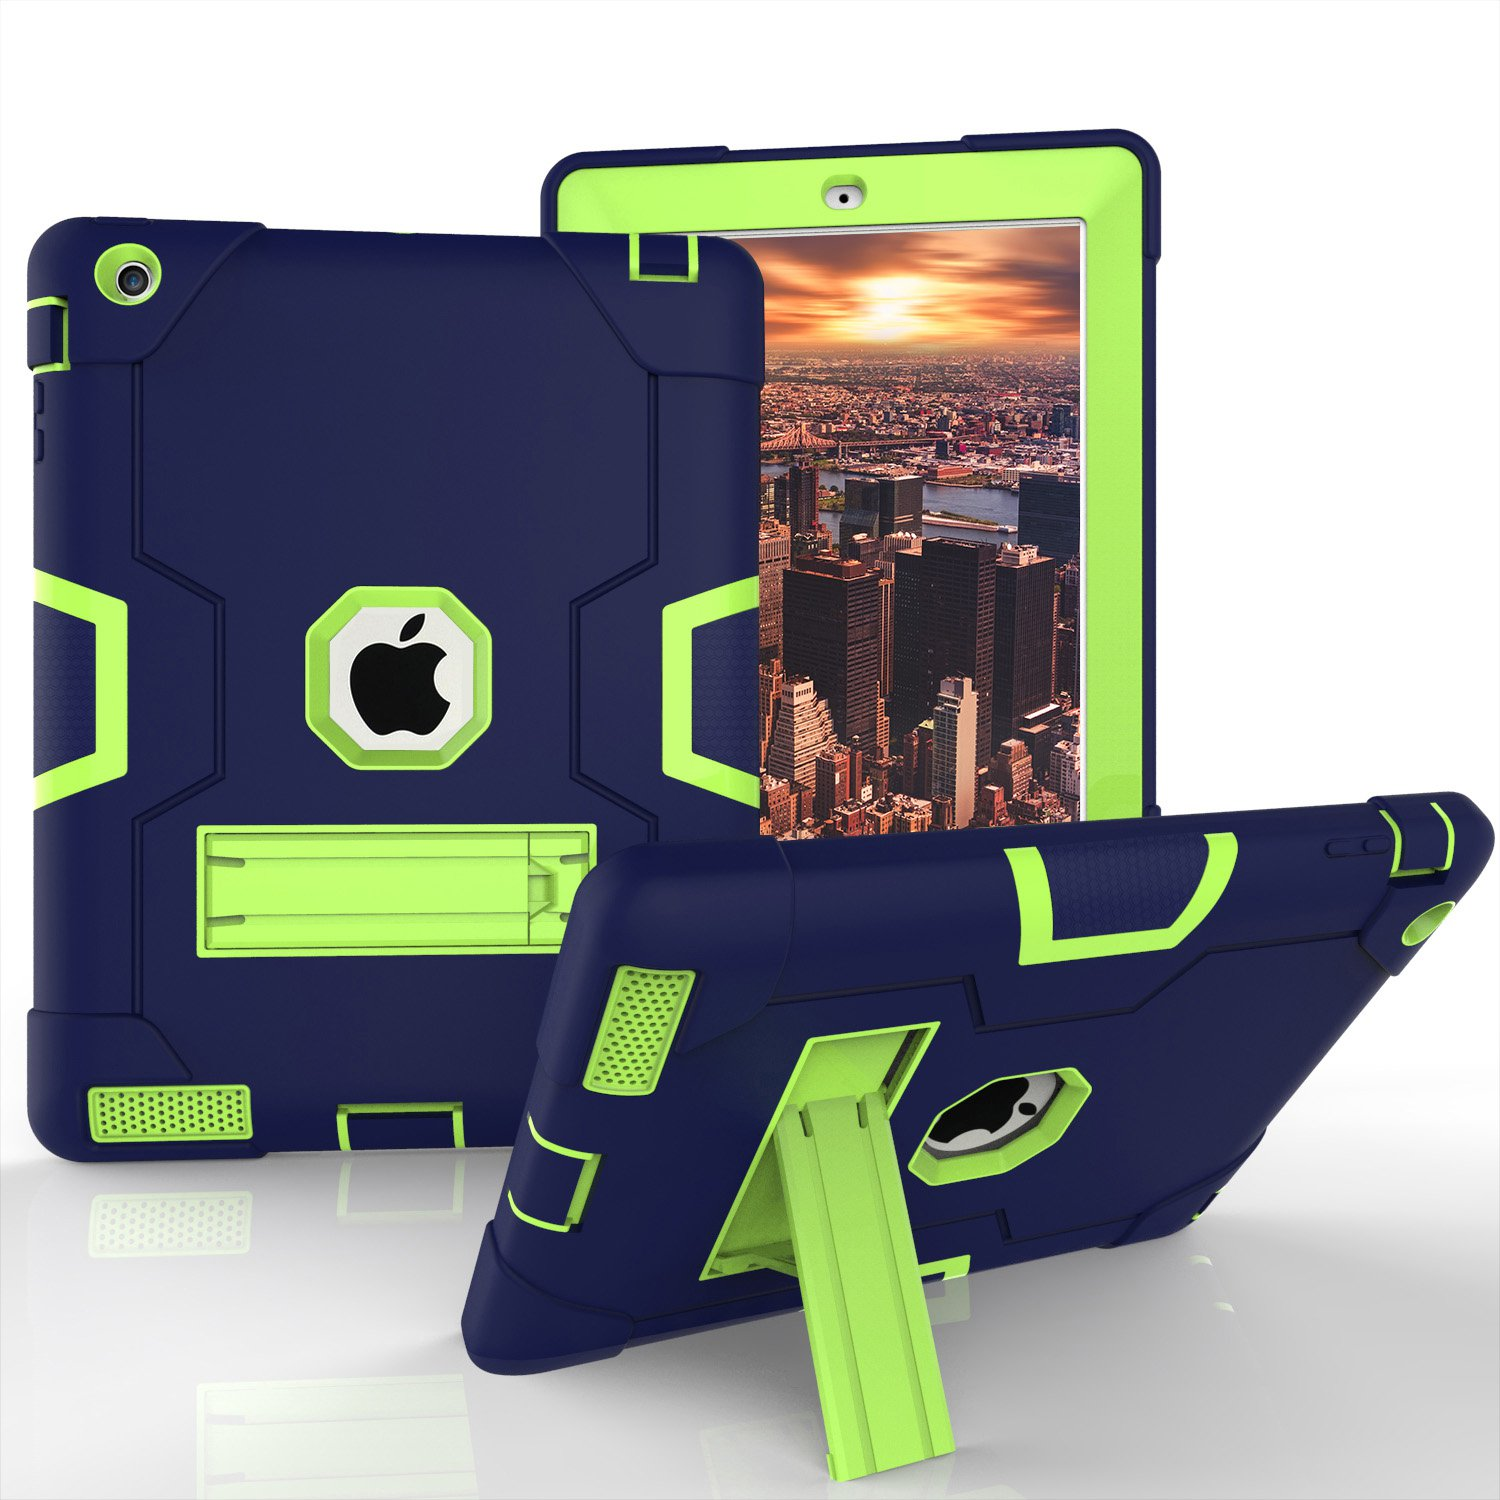 iPad 2 Case, iPad 3 Case, iPad 4 Case, Daker Kickstand Heavy Duty Rugged Shockproof High Impact Resistant Rubber Hybrid Three Layer Armor Full Body Protective Case for Apple iPad 2/3/4th Gen